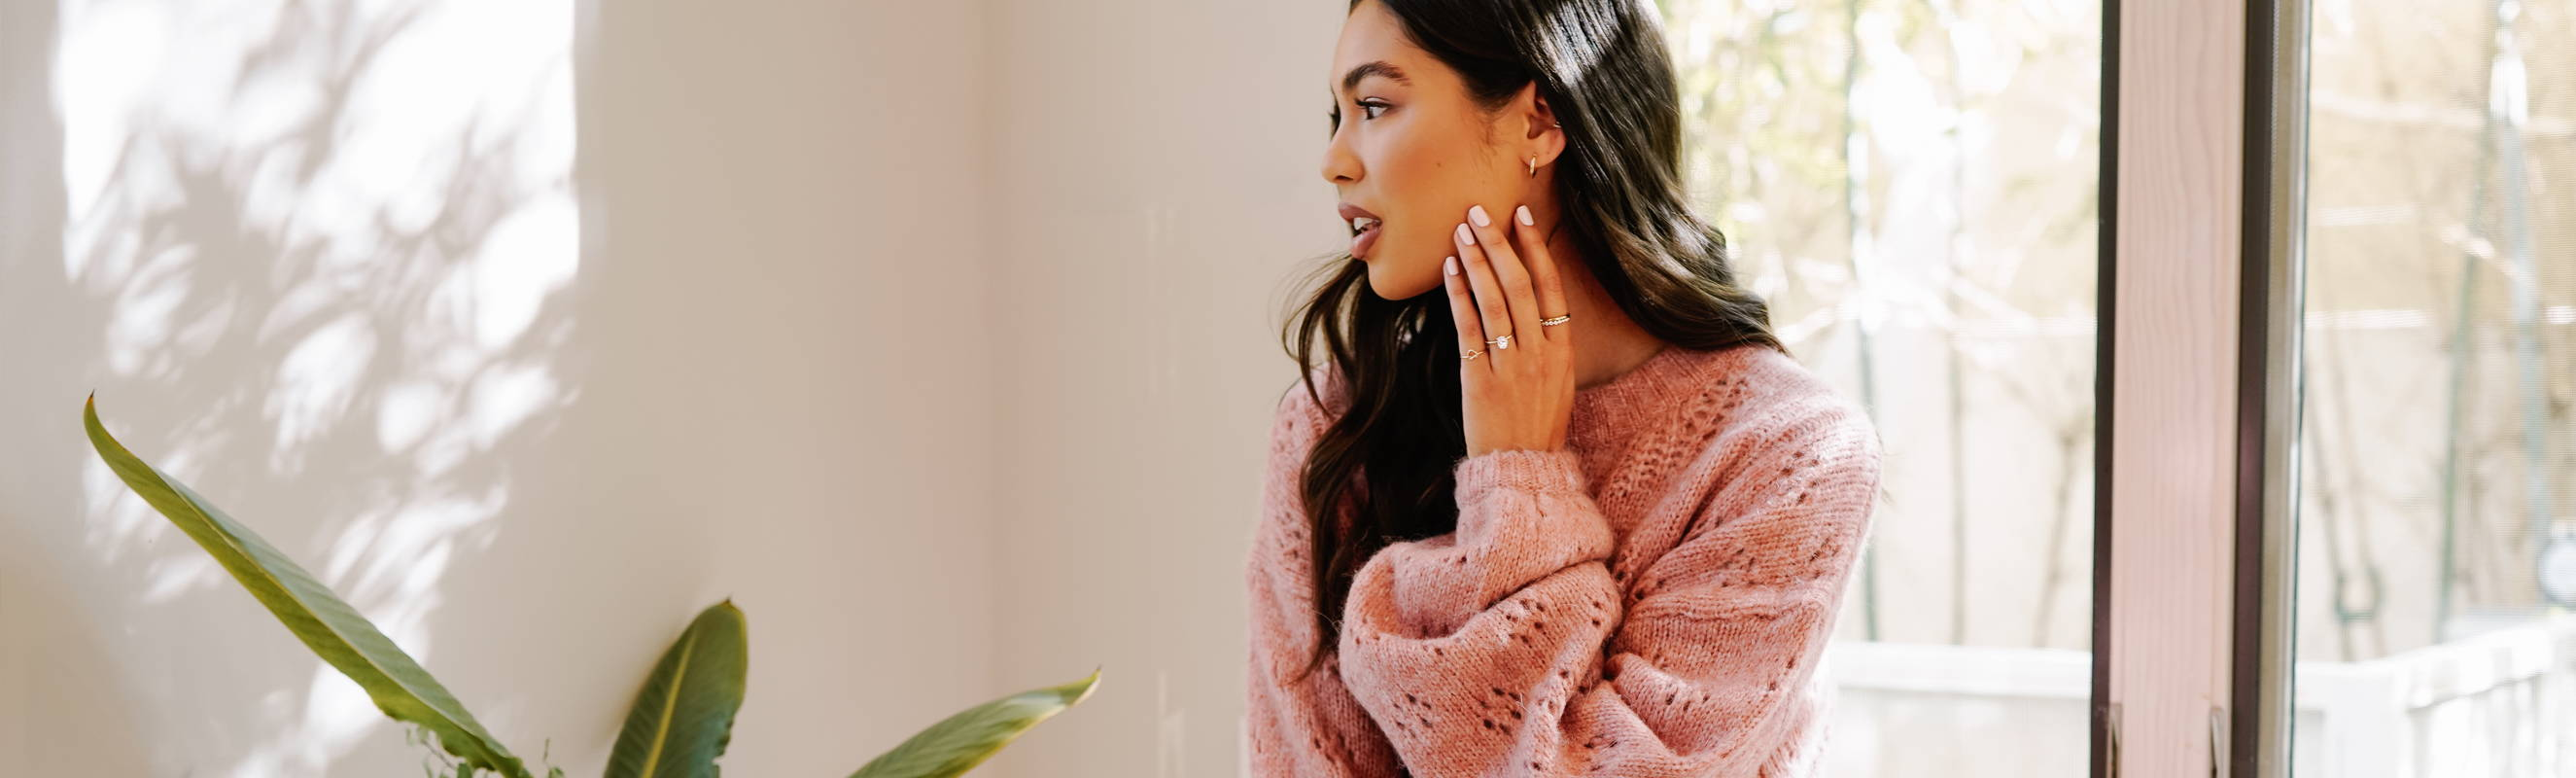 Model touching her face wearing Ring Concierge jewelry